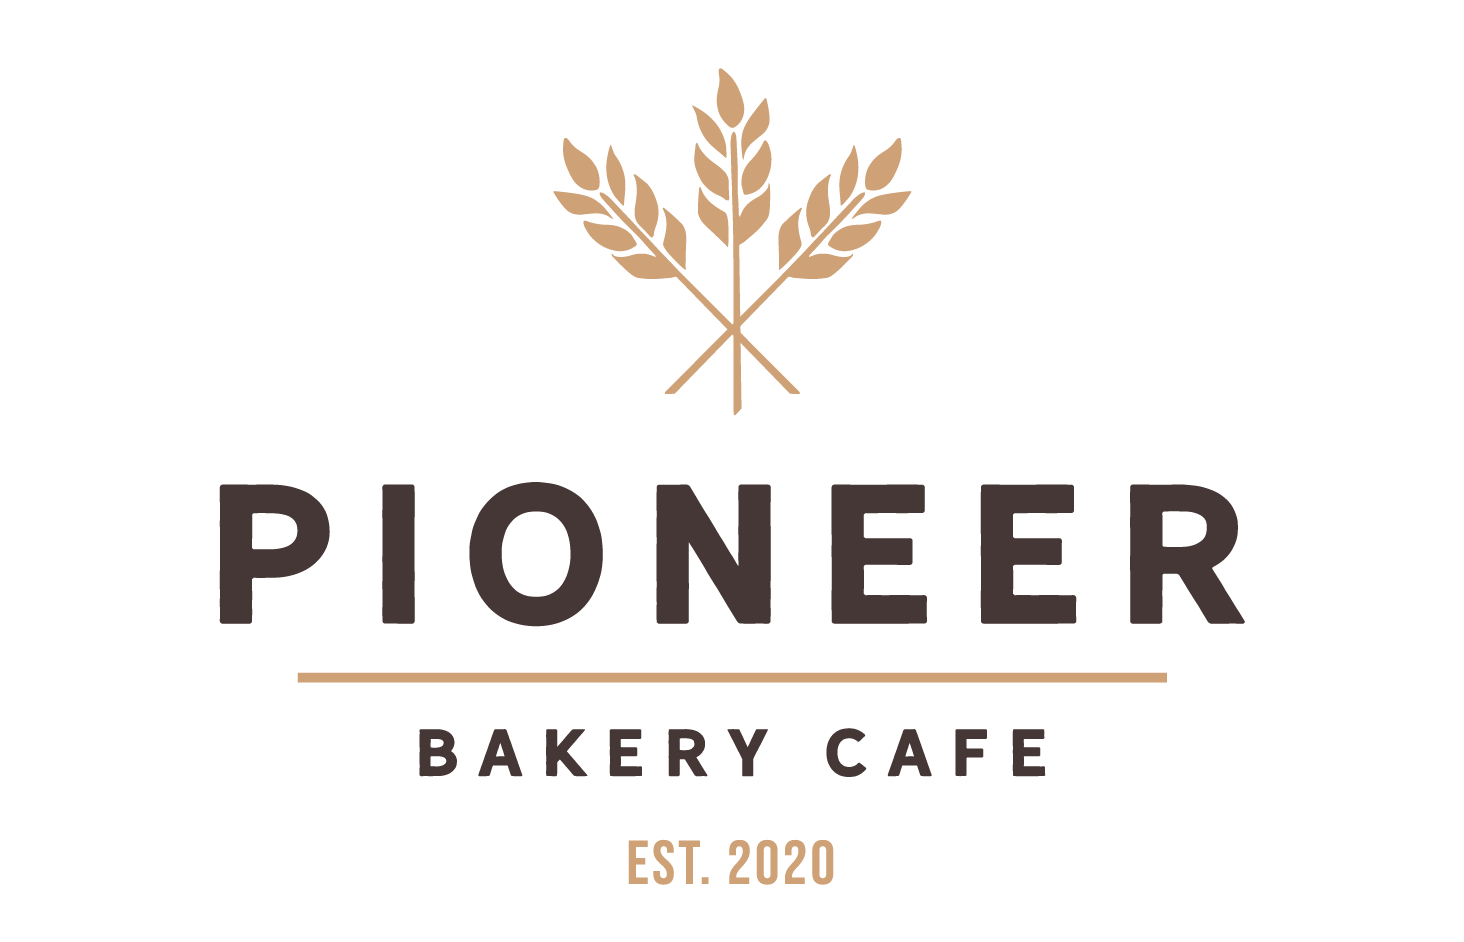 The Pioneer Bakery Cafe